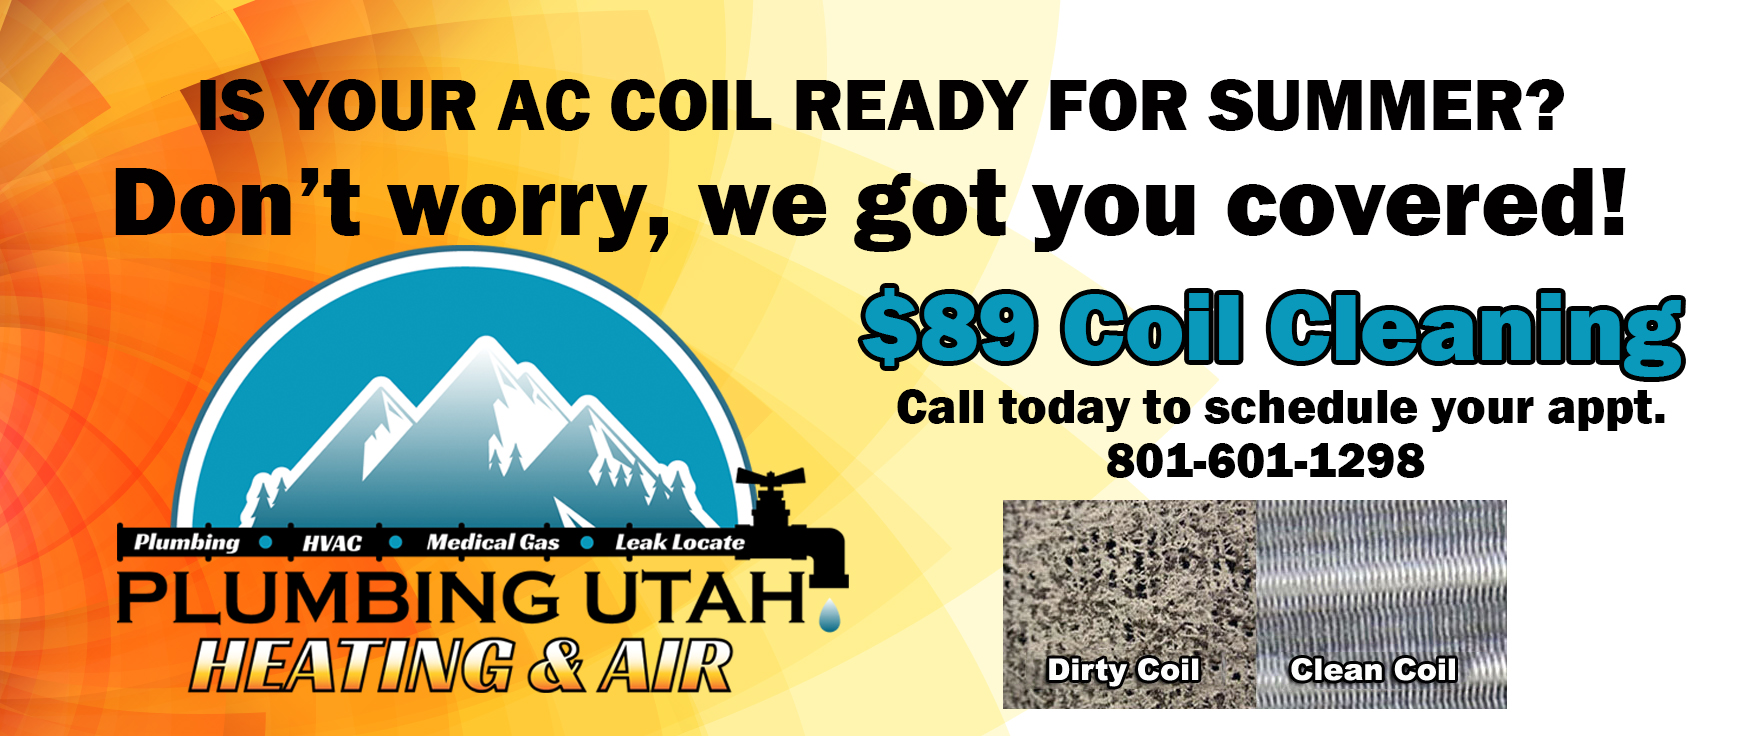 hvac-coil-cleaning-coupon